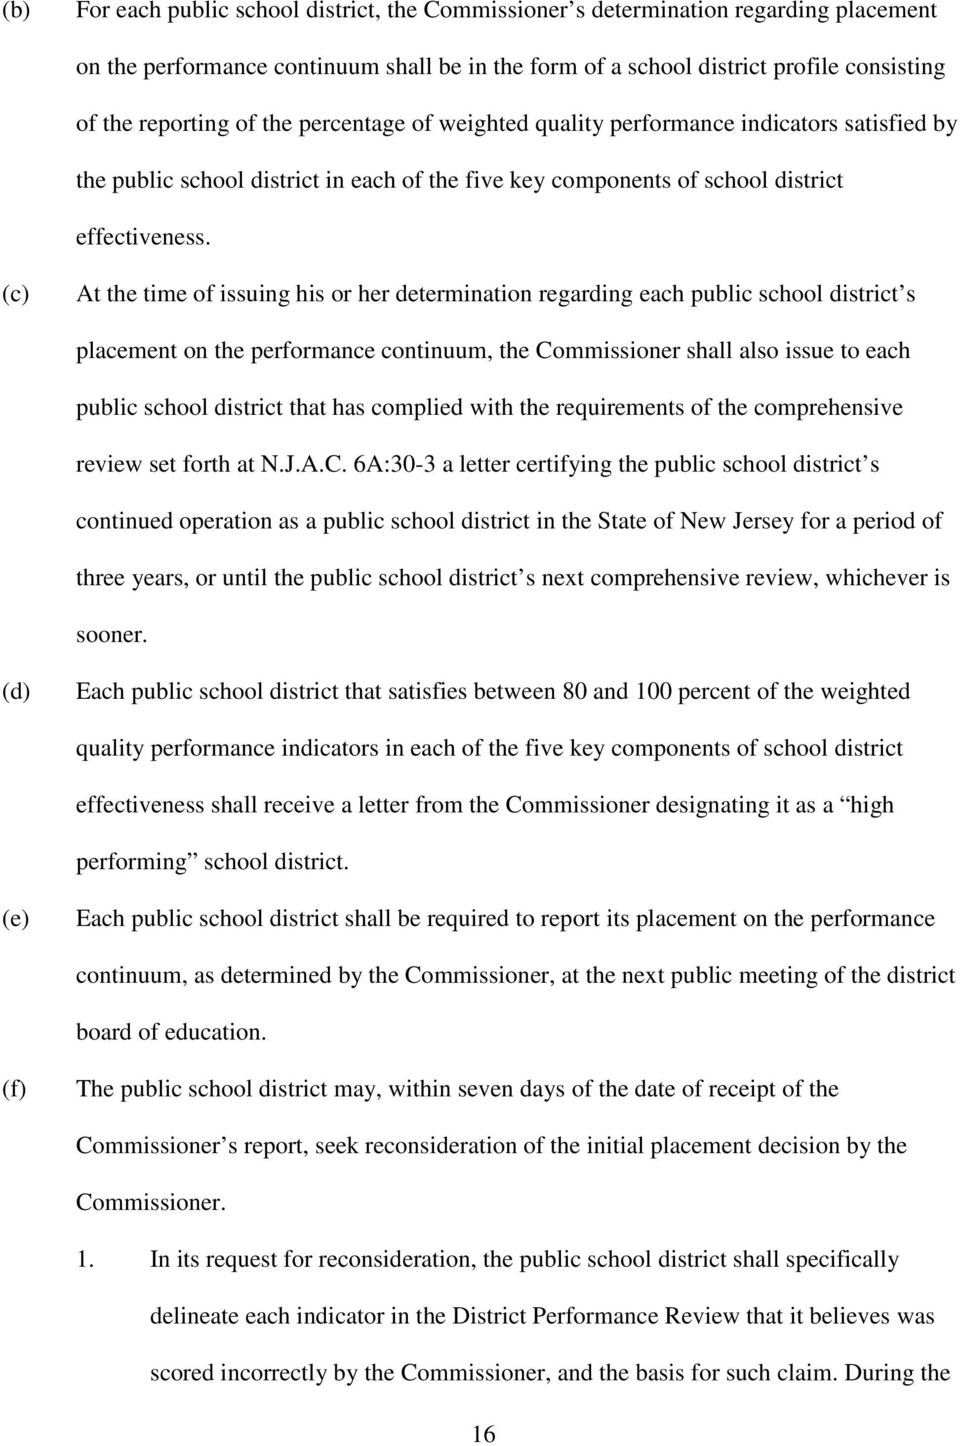 (c) At the time of issuing his or her determination regarding each public school district s placement on the performance continuum, the Commissioner shall also issue to each public school district